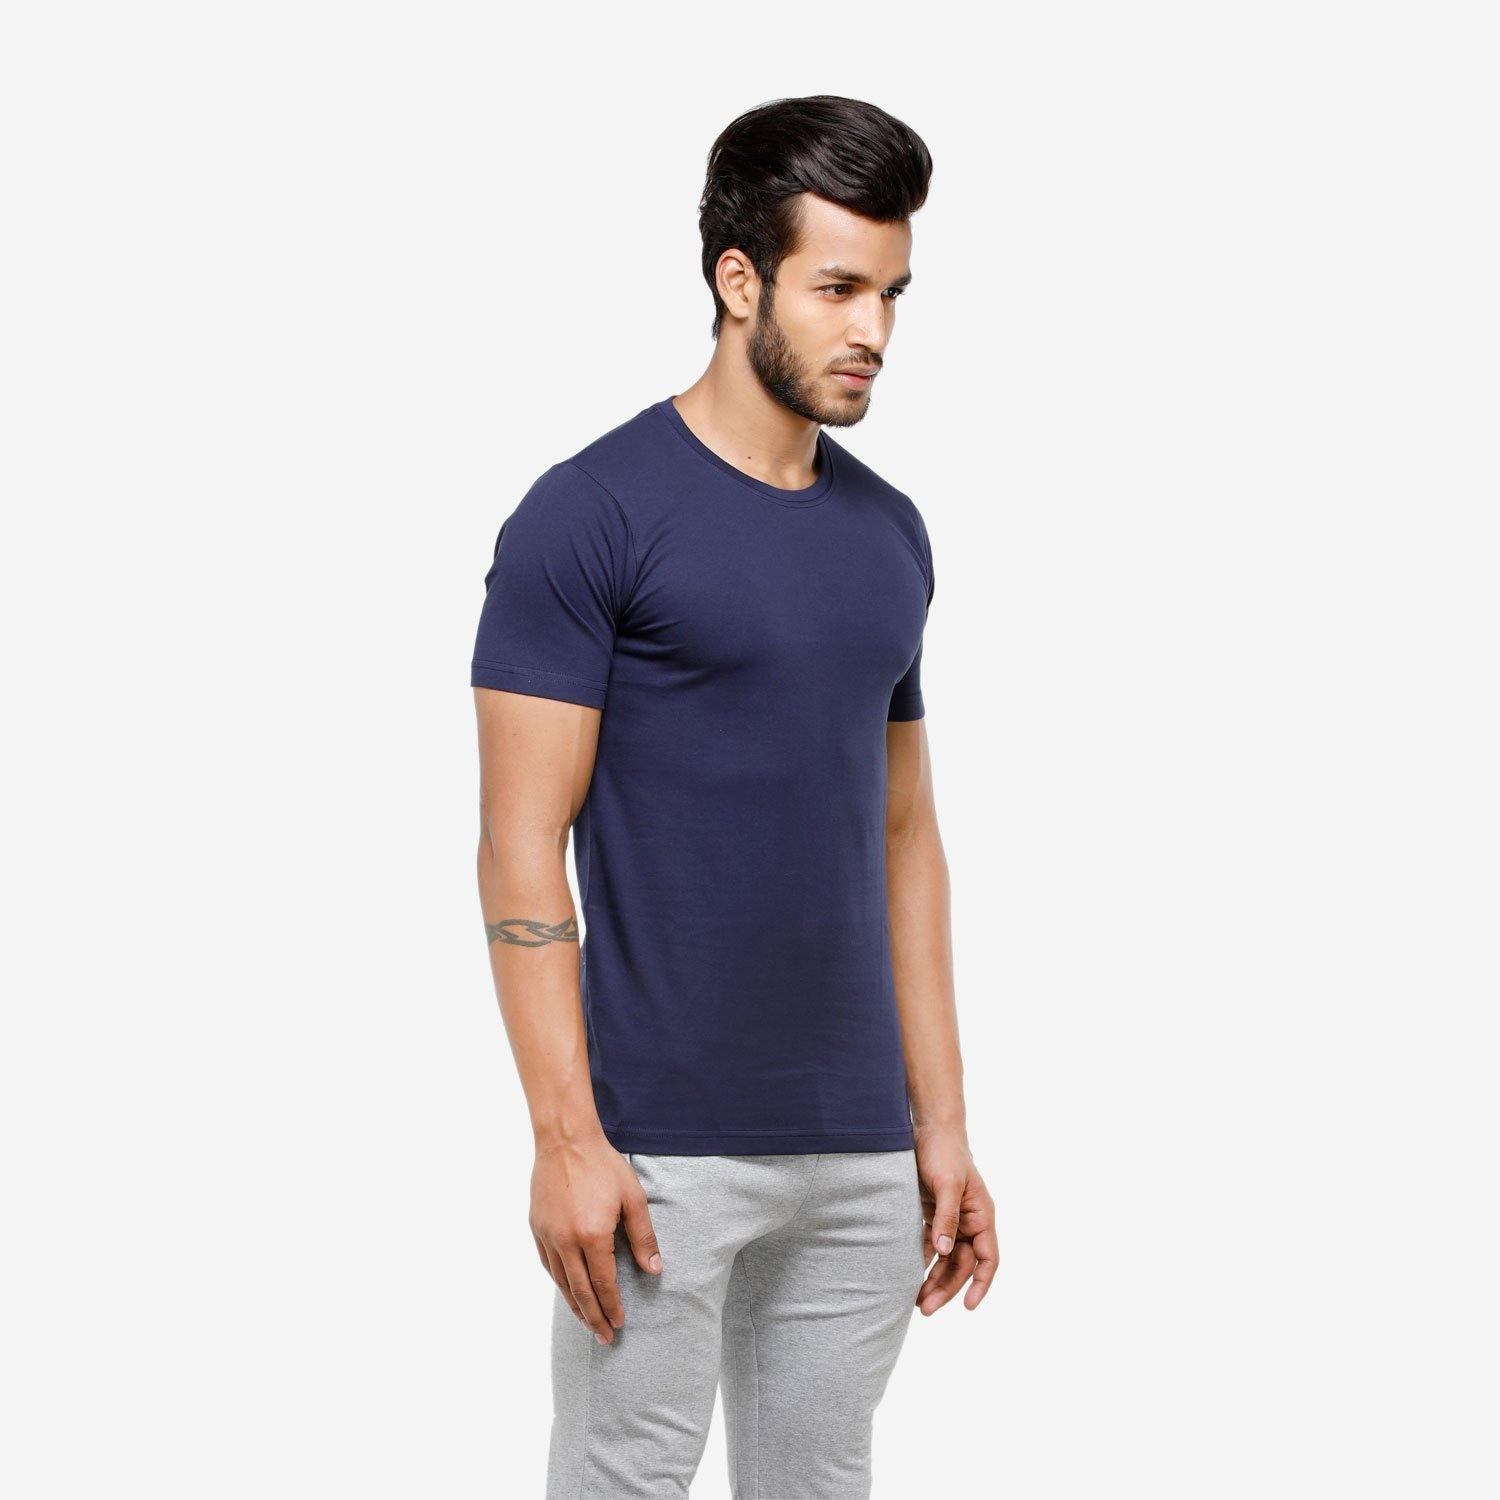 Summer T-Shirt For Men